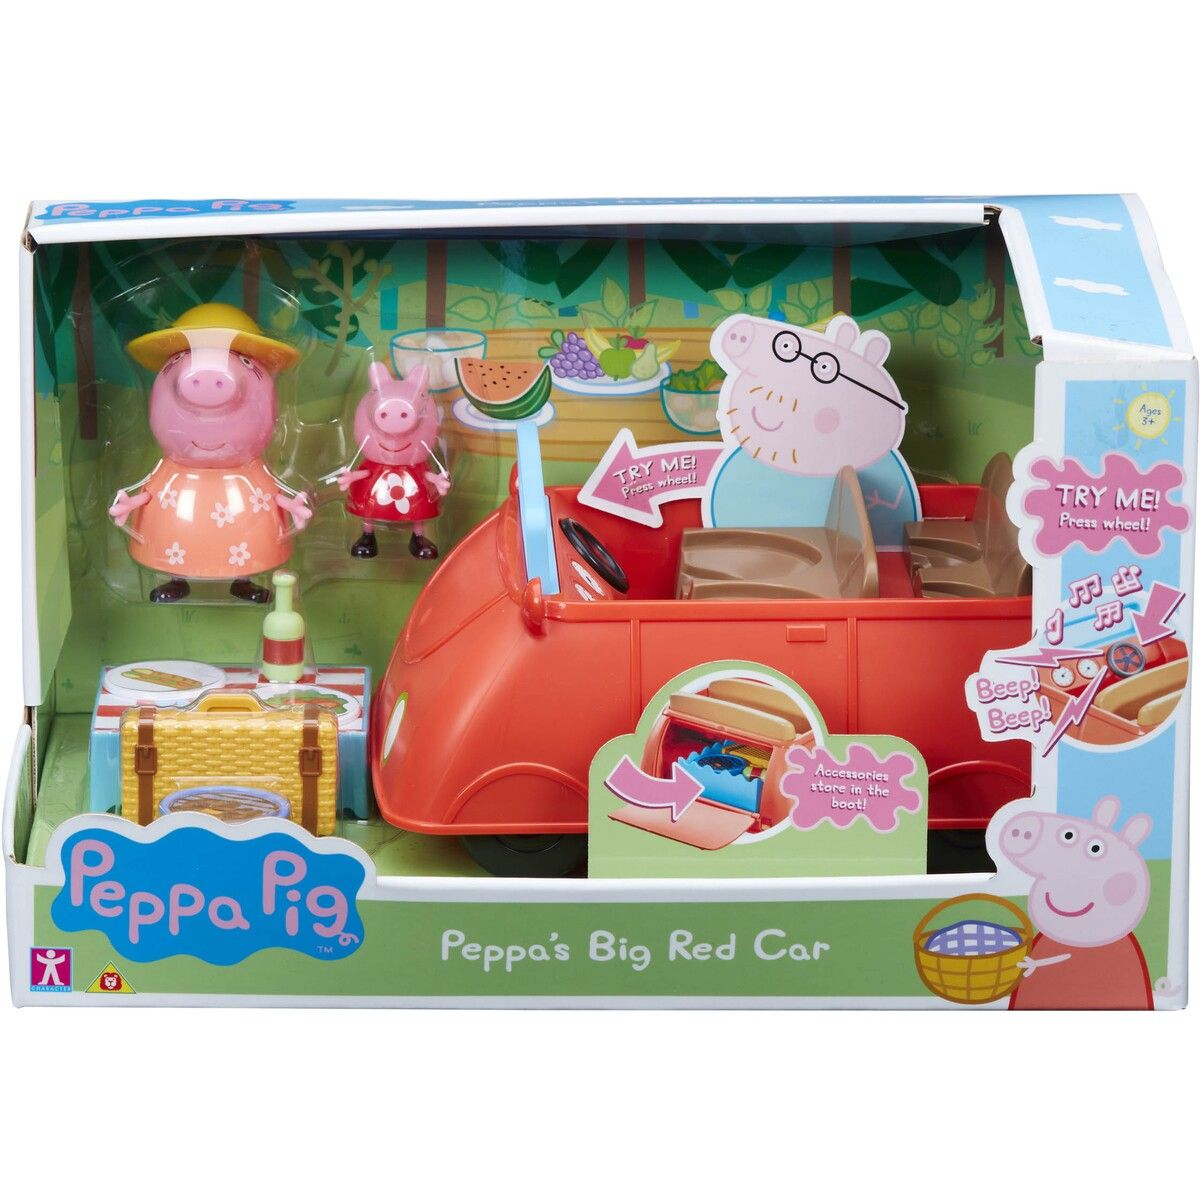 Peppa Pig Deluxe Family Car Peppa pig toys, Peppa pig, Toys